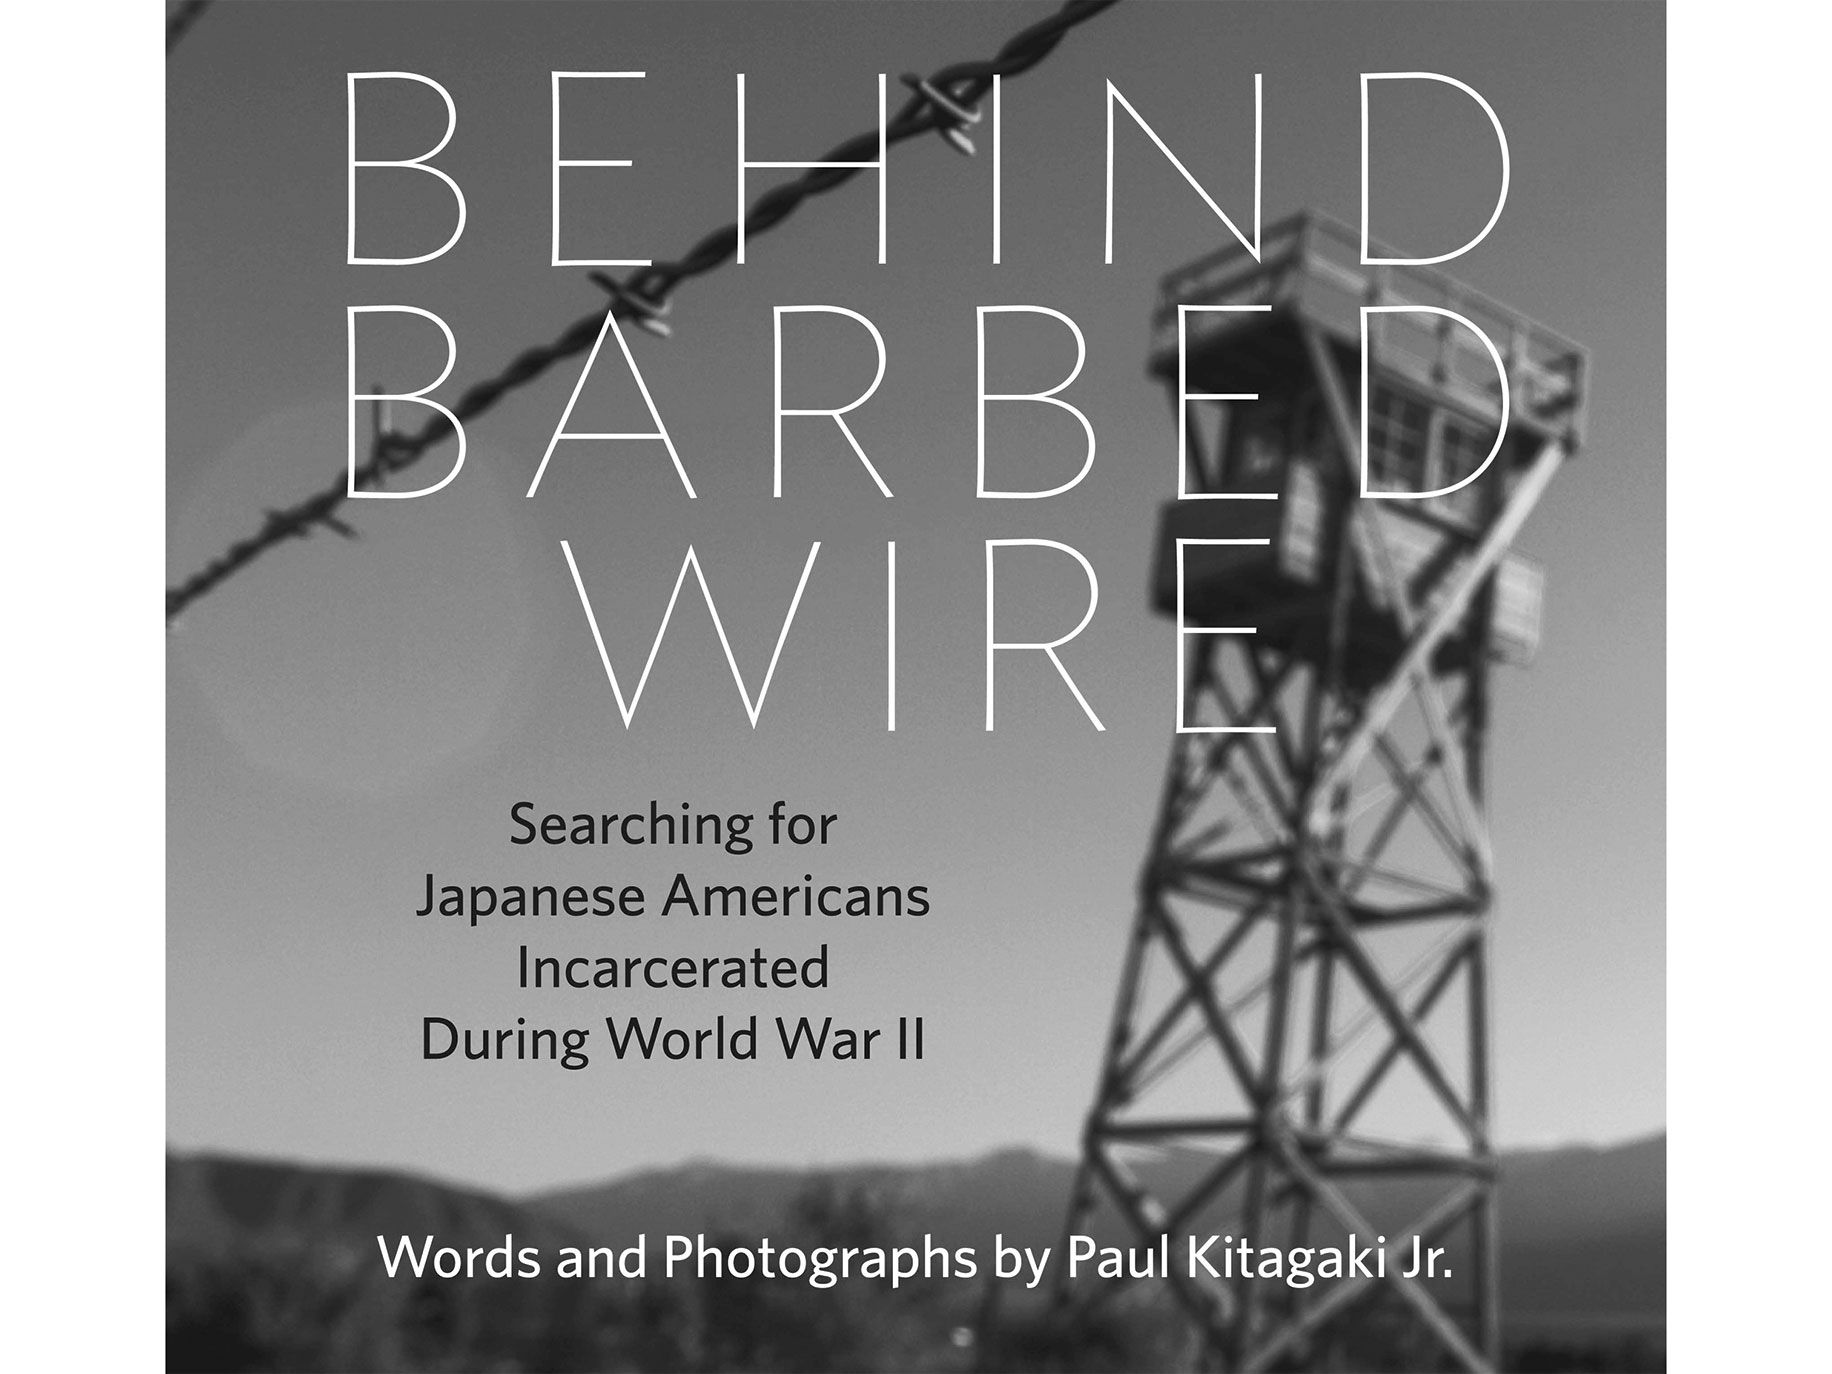 Behind Barbed Wire, by Paul Kitagaki Jr., CityFiles Press, 152 Pages, $34.95